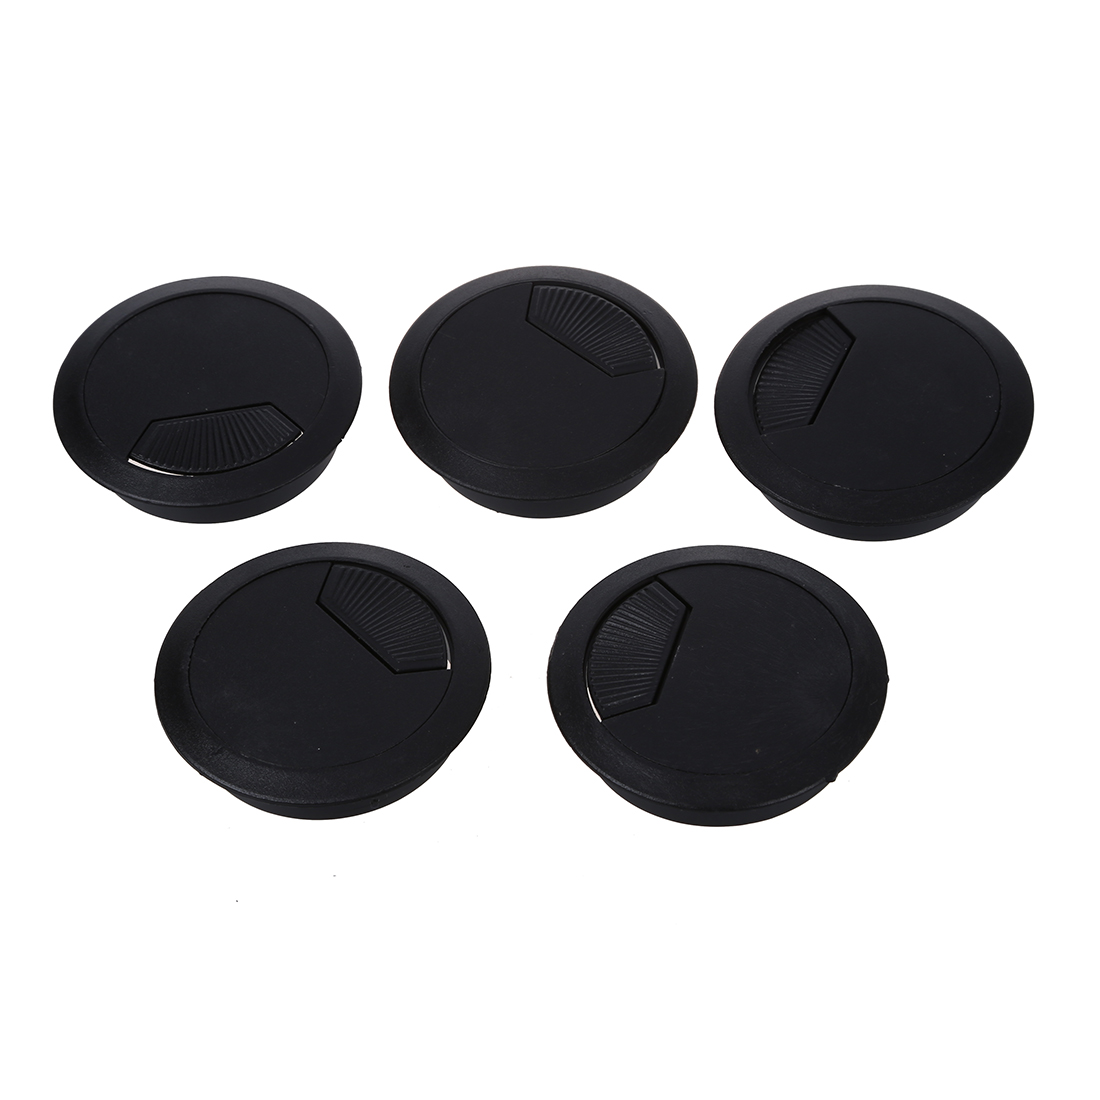 5 Pcs Home Office Desk Table Computer 60mm Cable Cord Grommet Hole Black цена и фото